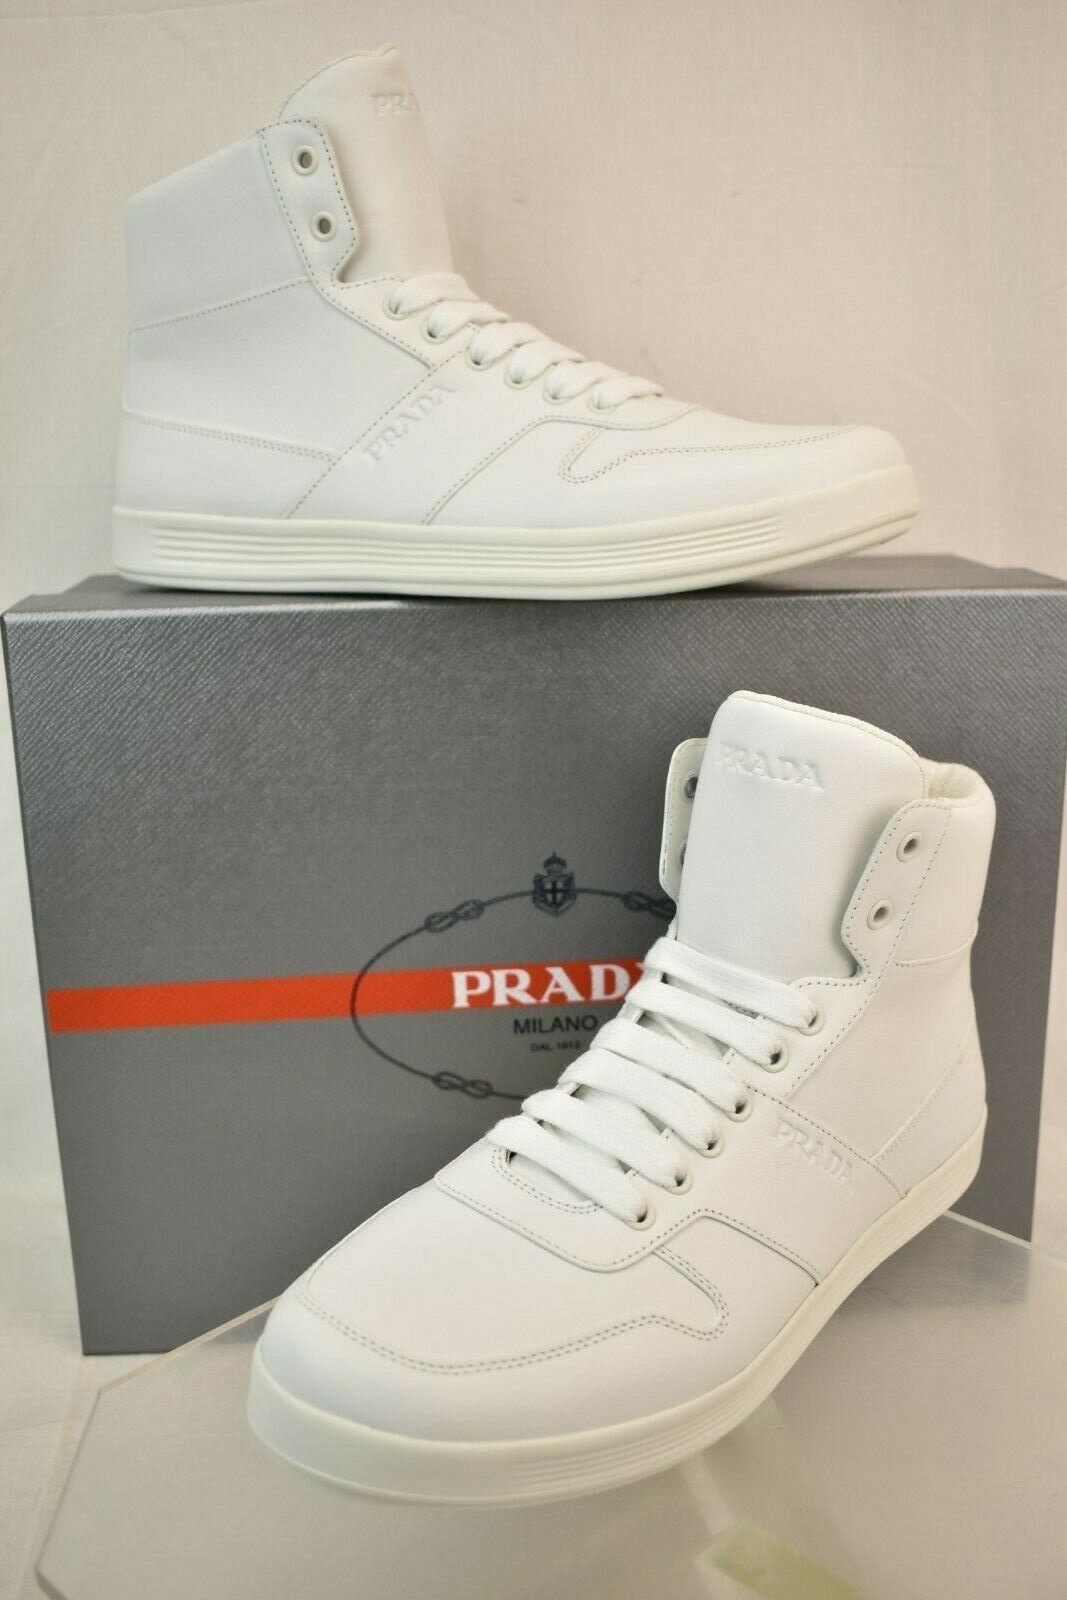 NIB PRADA MEN WHITE LEATHER LACE UP LETTERING LOGO HIGH TOP ZIP SNEAKERS 8 US 9